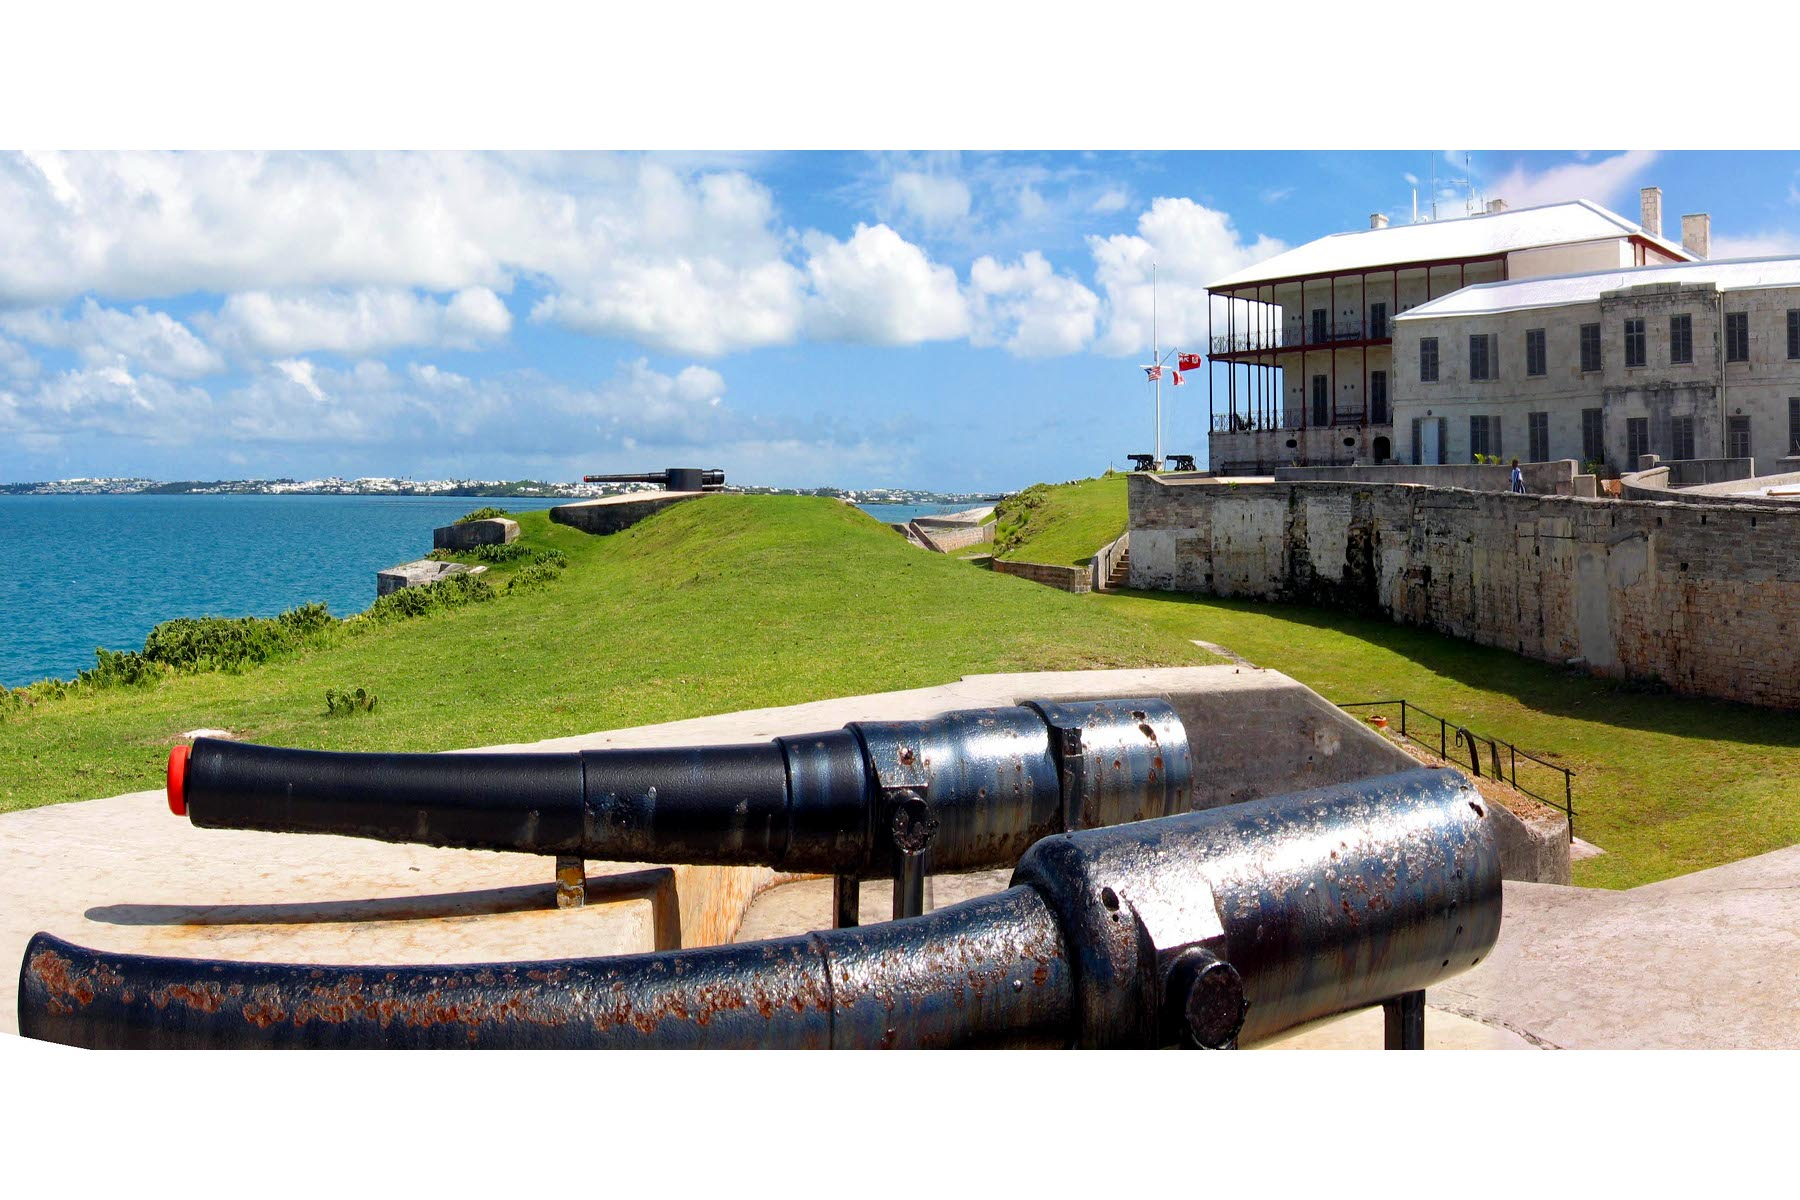 Royal Naval Dockyard, West End, Bermuda